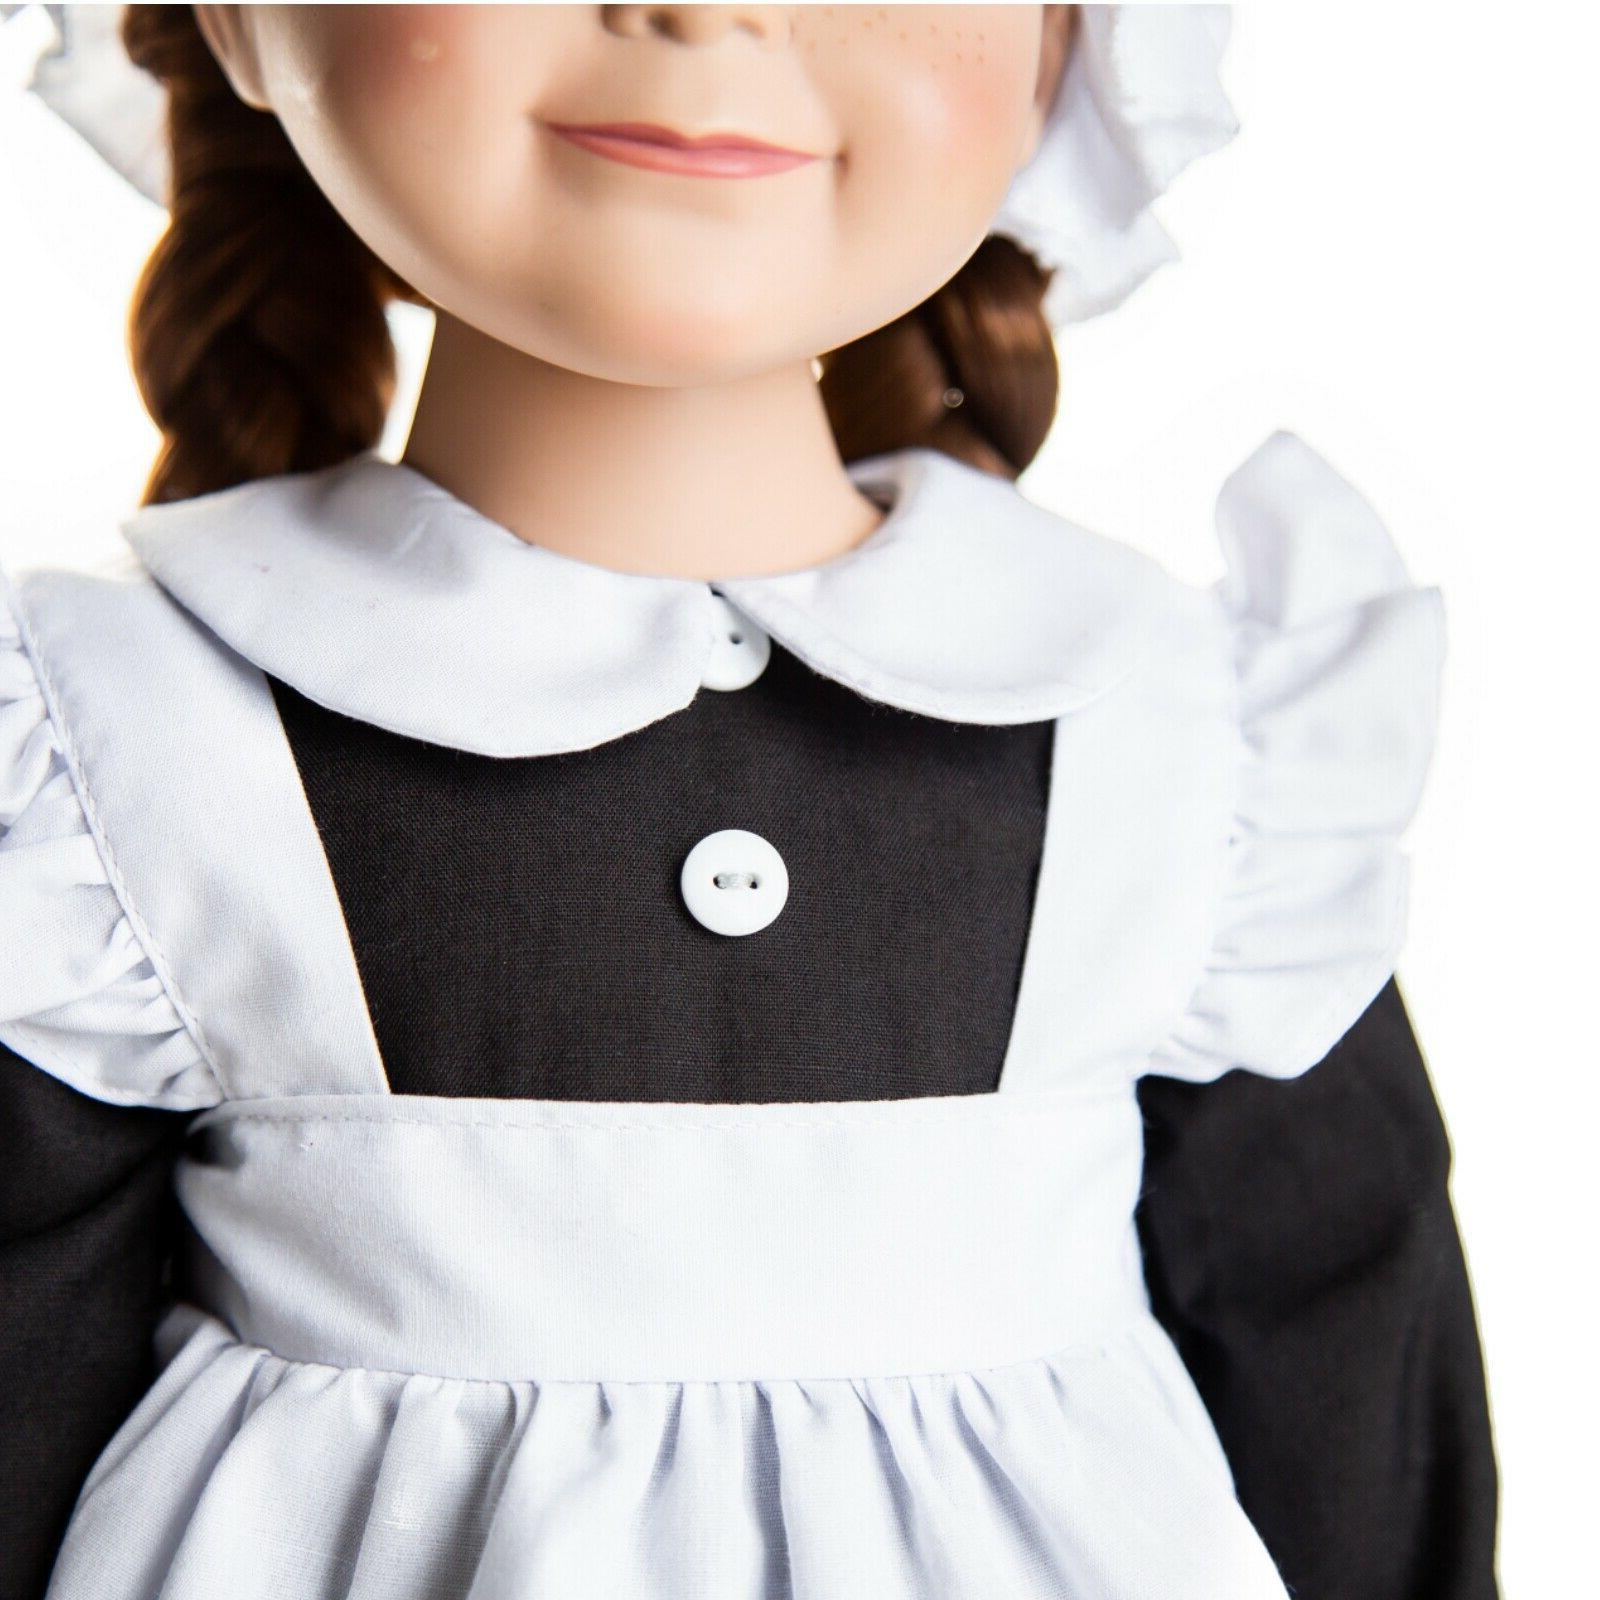 18 Doll 4 PIECE MAID OUTFIT Girl